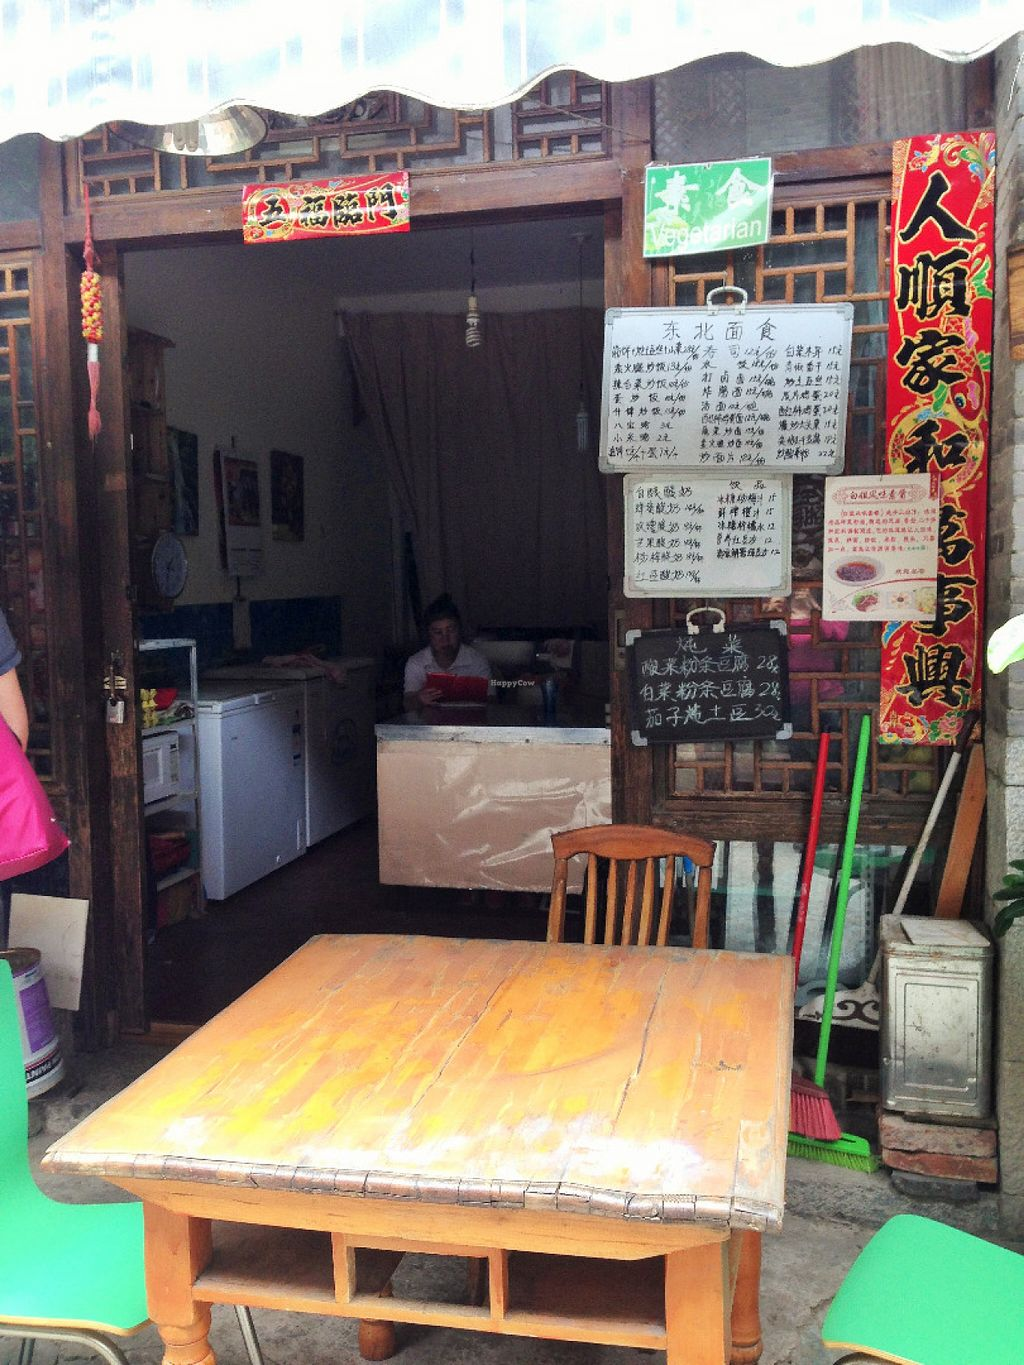 """Photo of CLOSED: Si Jie Noodle Shop  by <a href=""""/members/profile/Stevie"""">Stevie</a> <br/> June 29, 2016  - <a href='/contact/abuse/image/75767/156714'>Report</a>"""